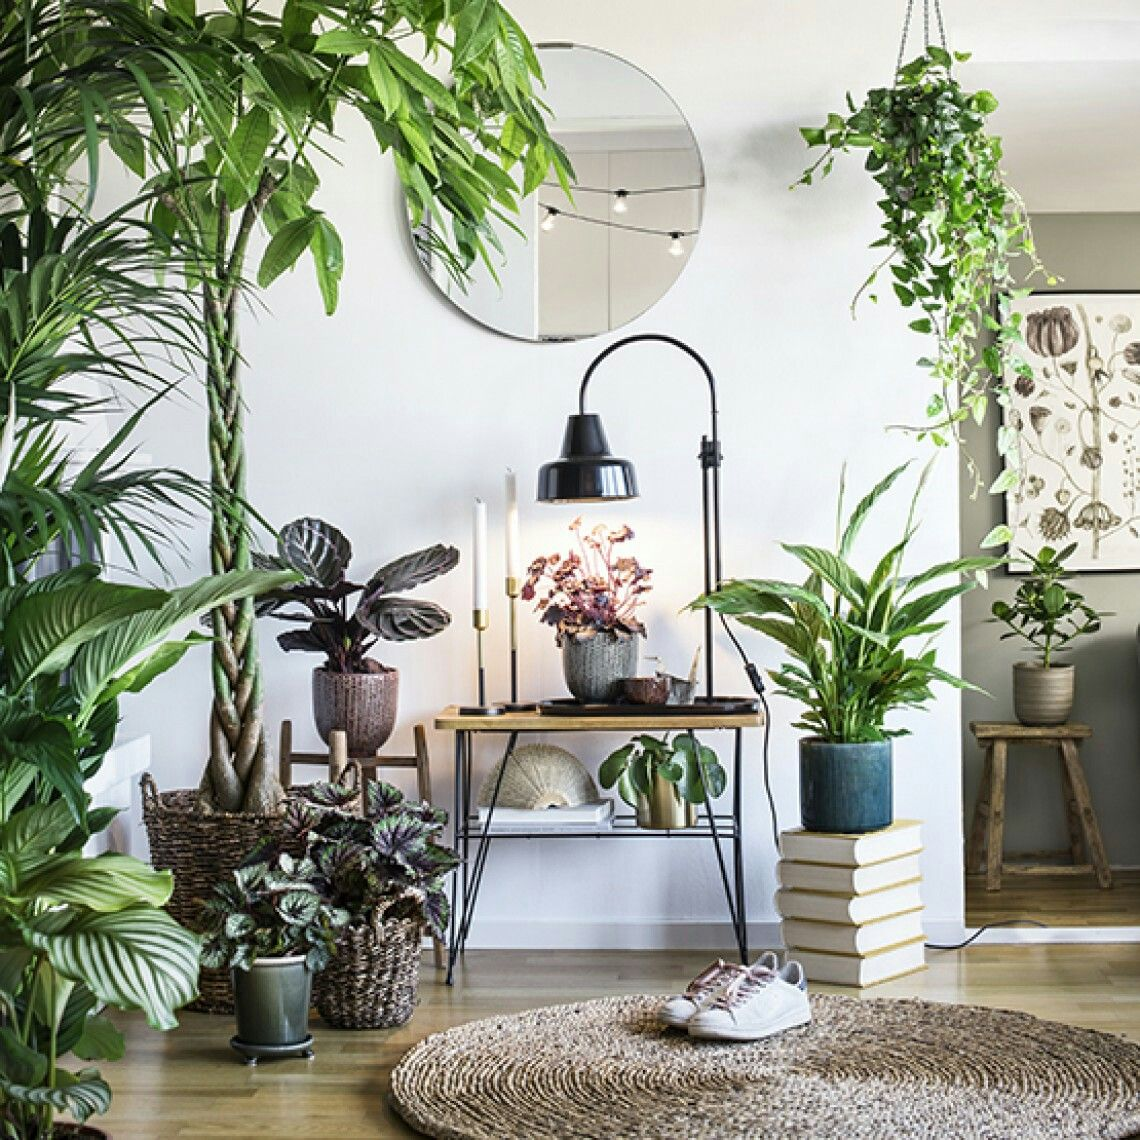 Boho interior | Plant Information | Pinterest | Interiors, Plants ...